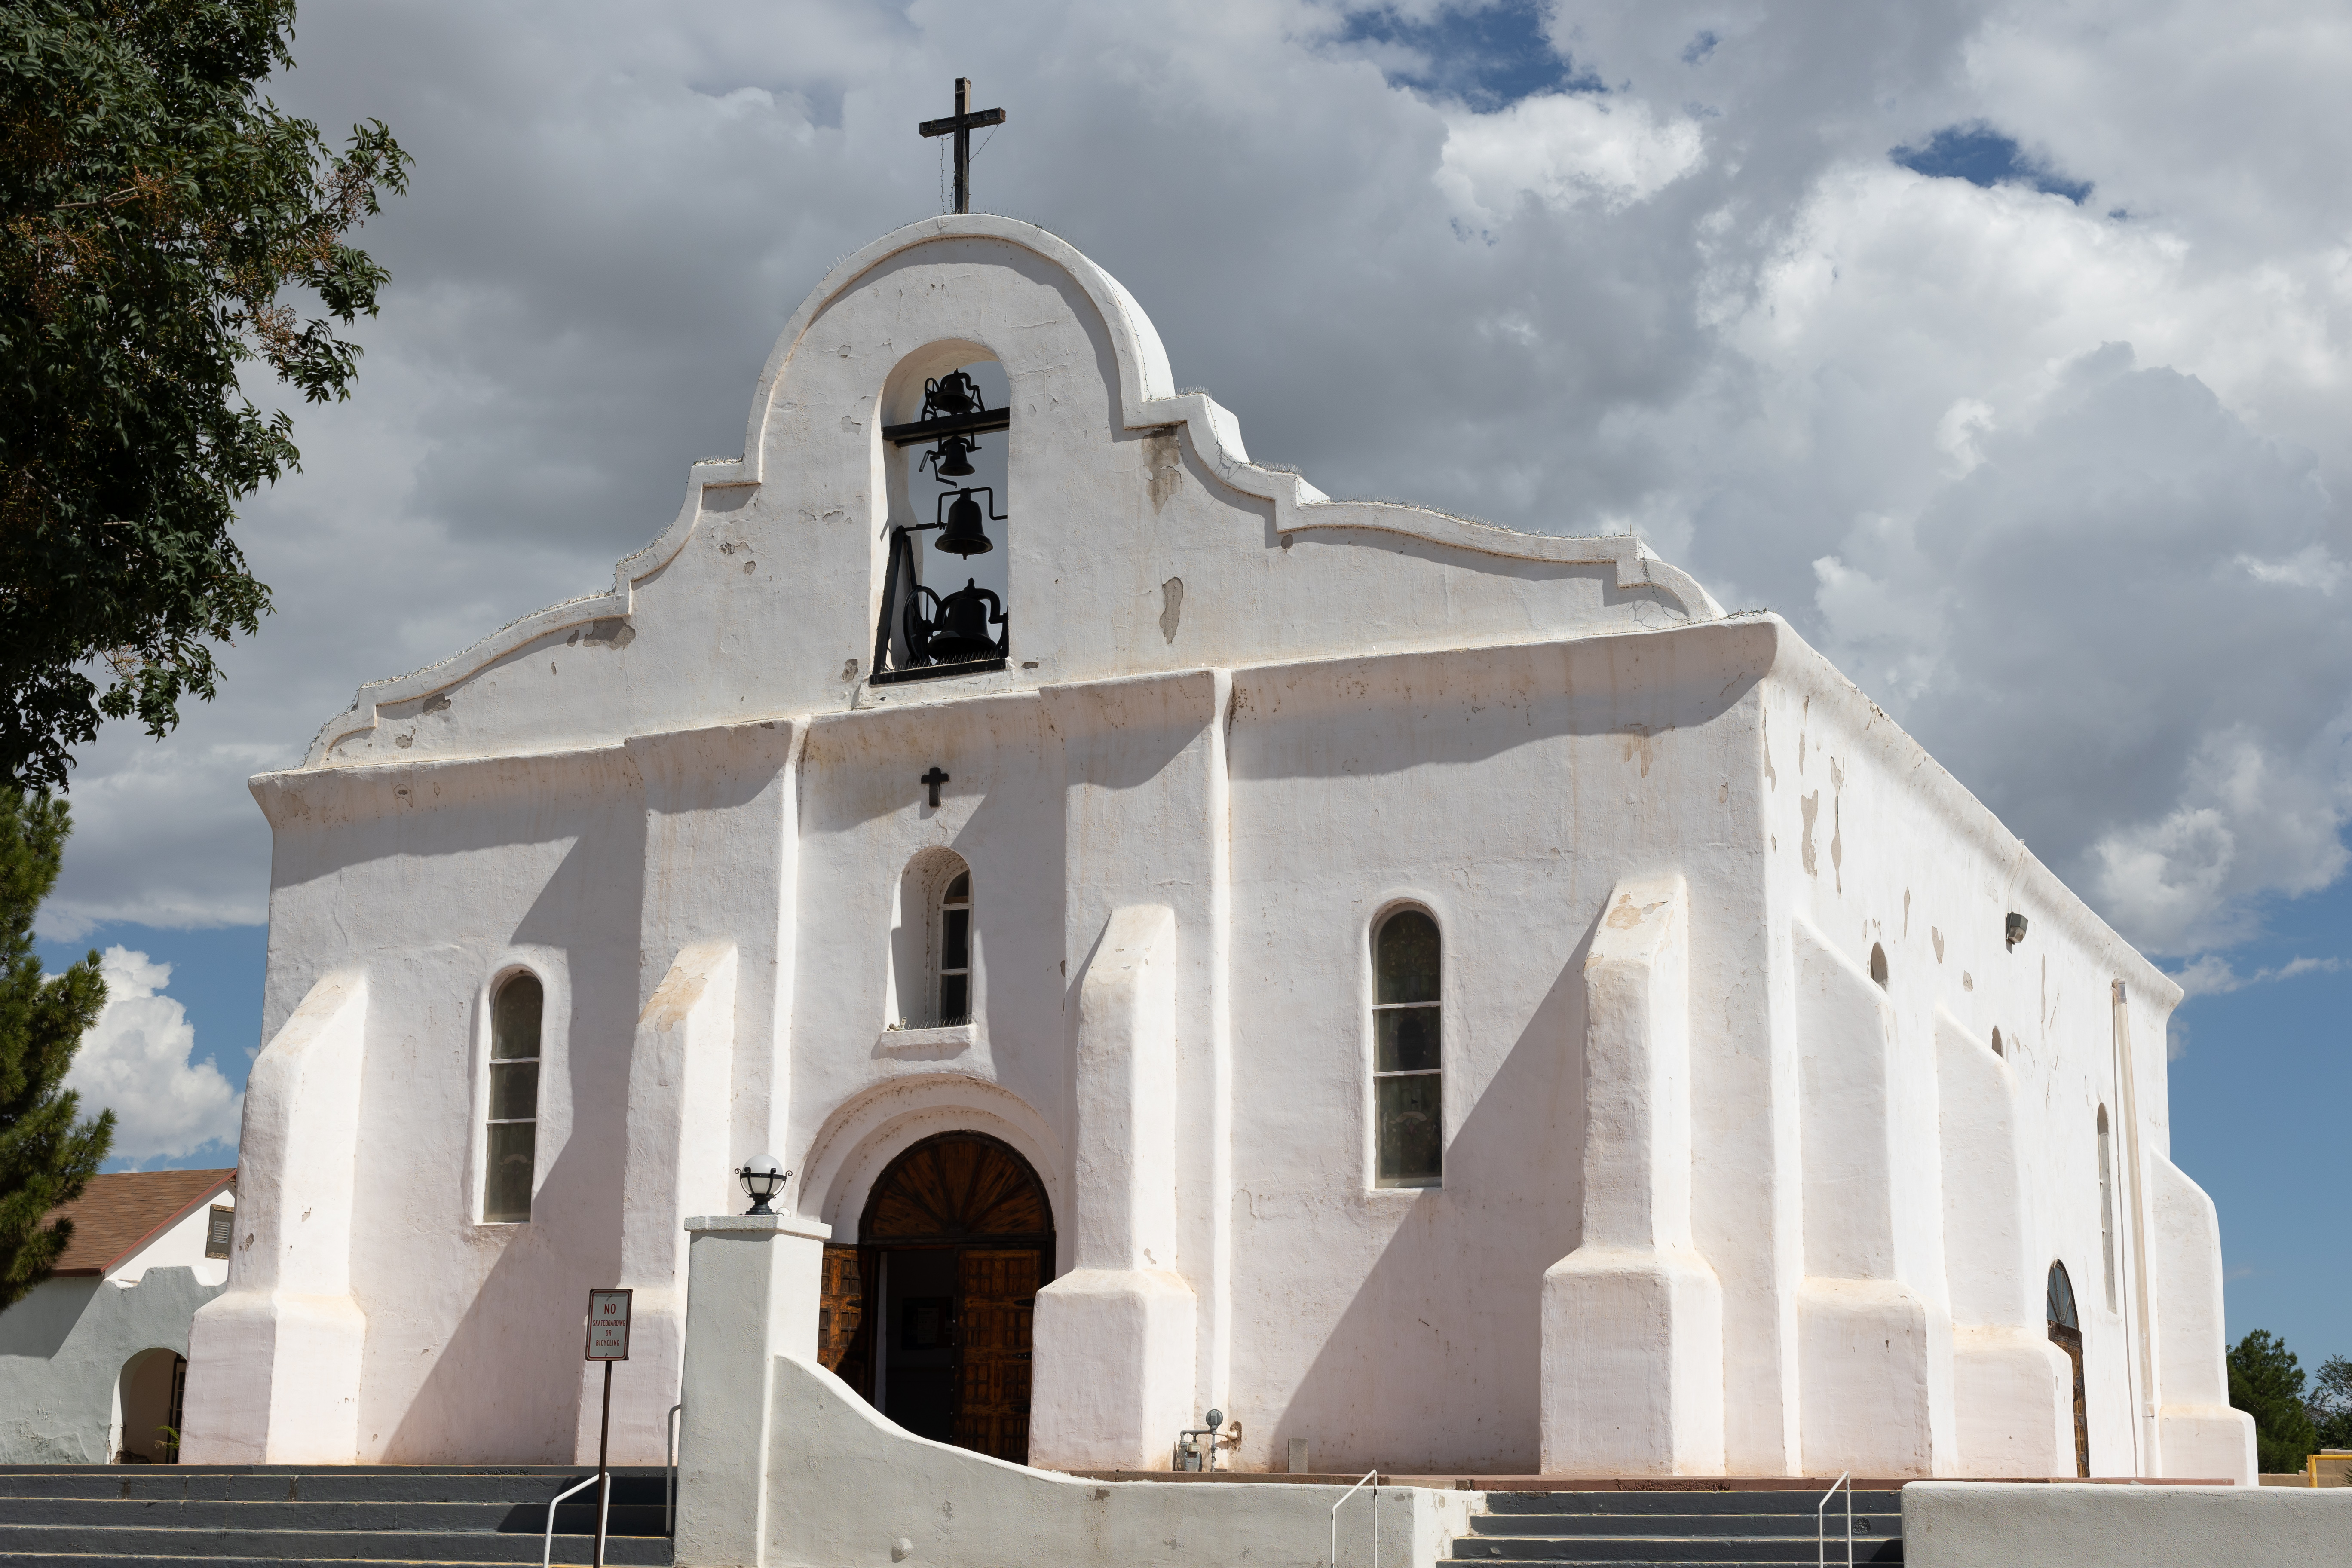 A picture of San Elizario Mission on a partially cloudy day, taken from the Plaza that stands in front of it.